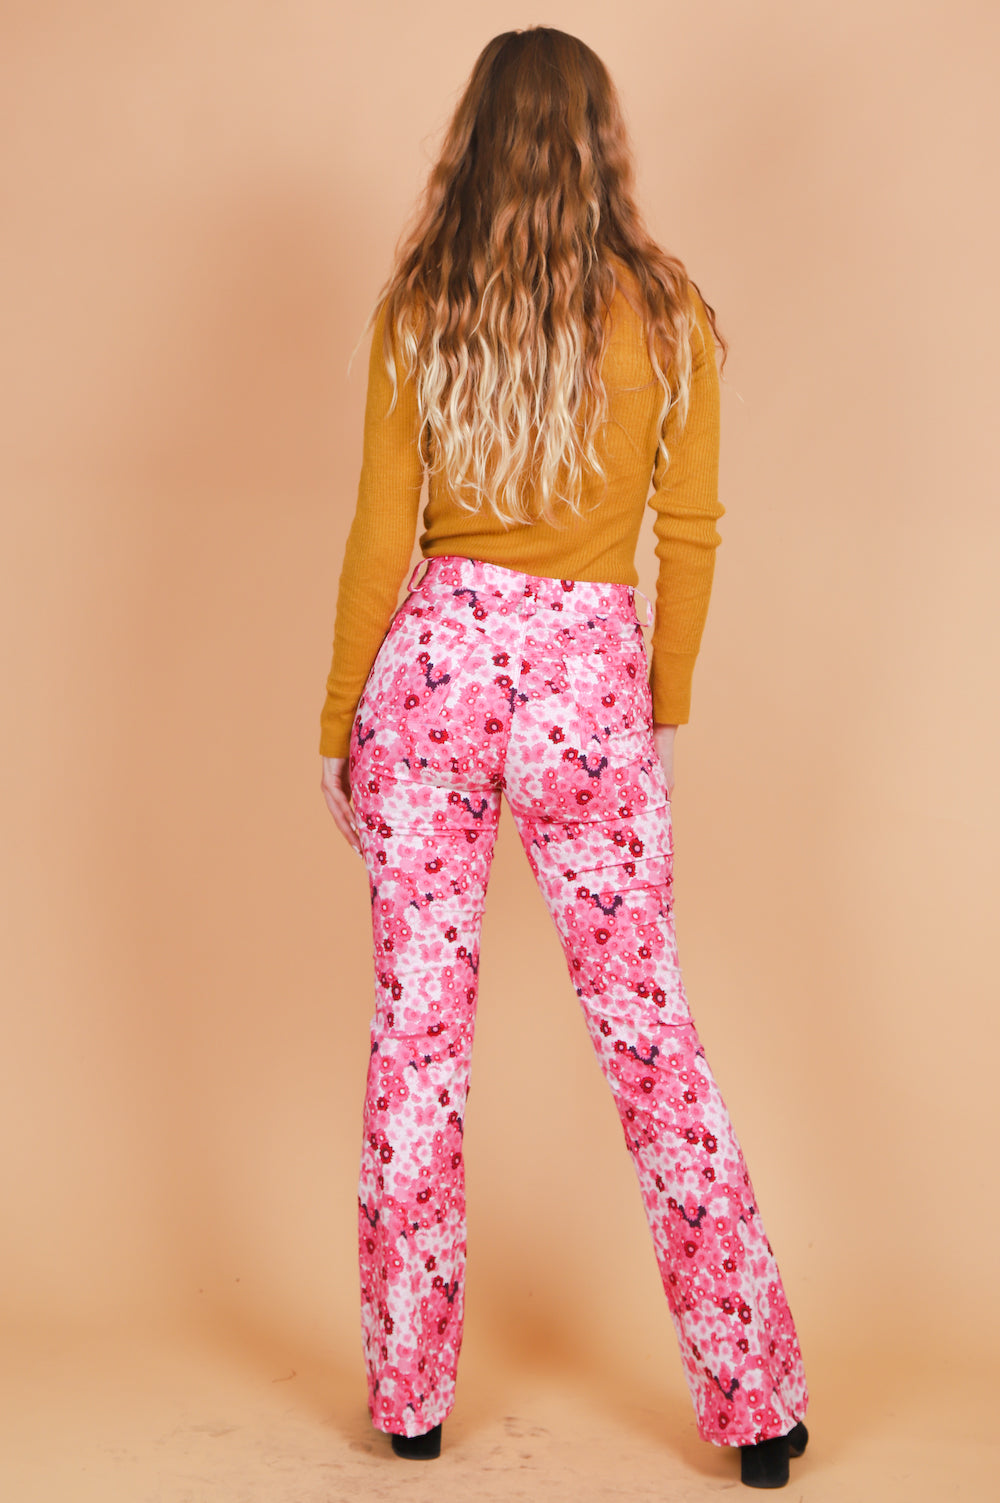 Vintage Strawberry Fields Forever Pants